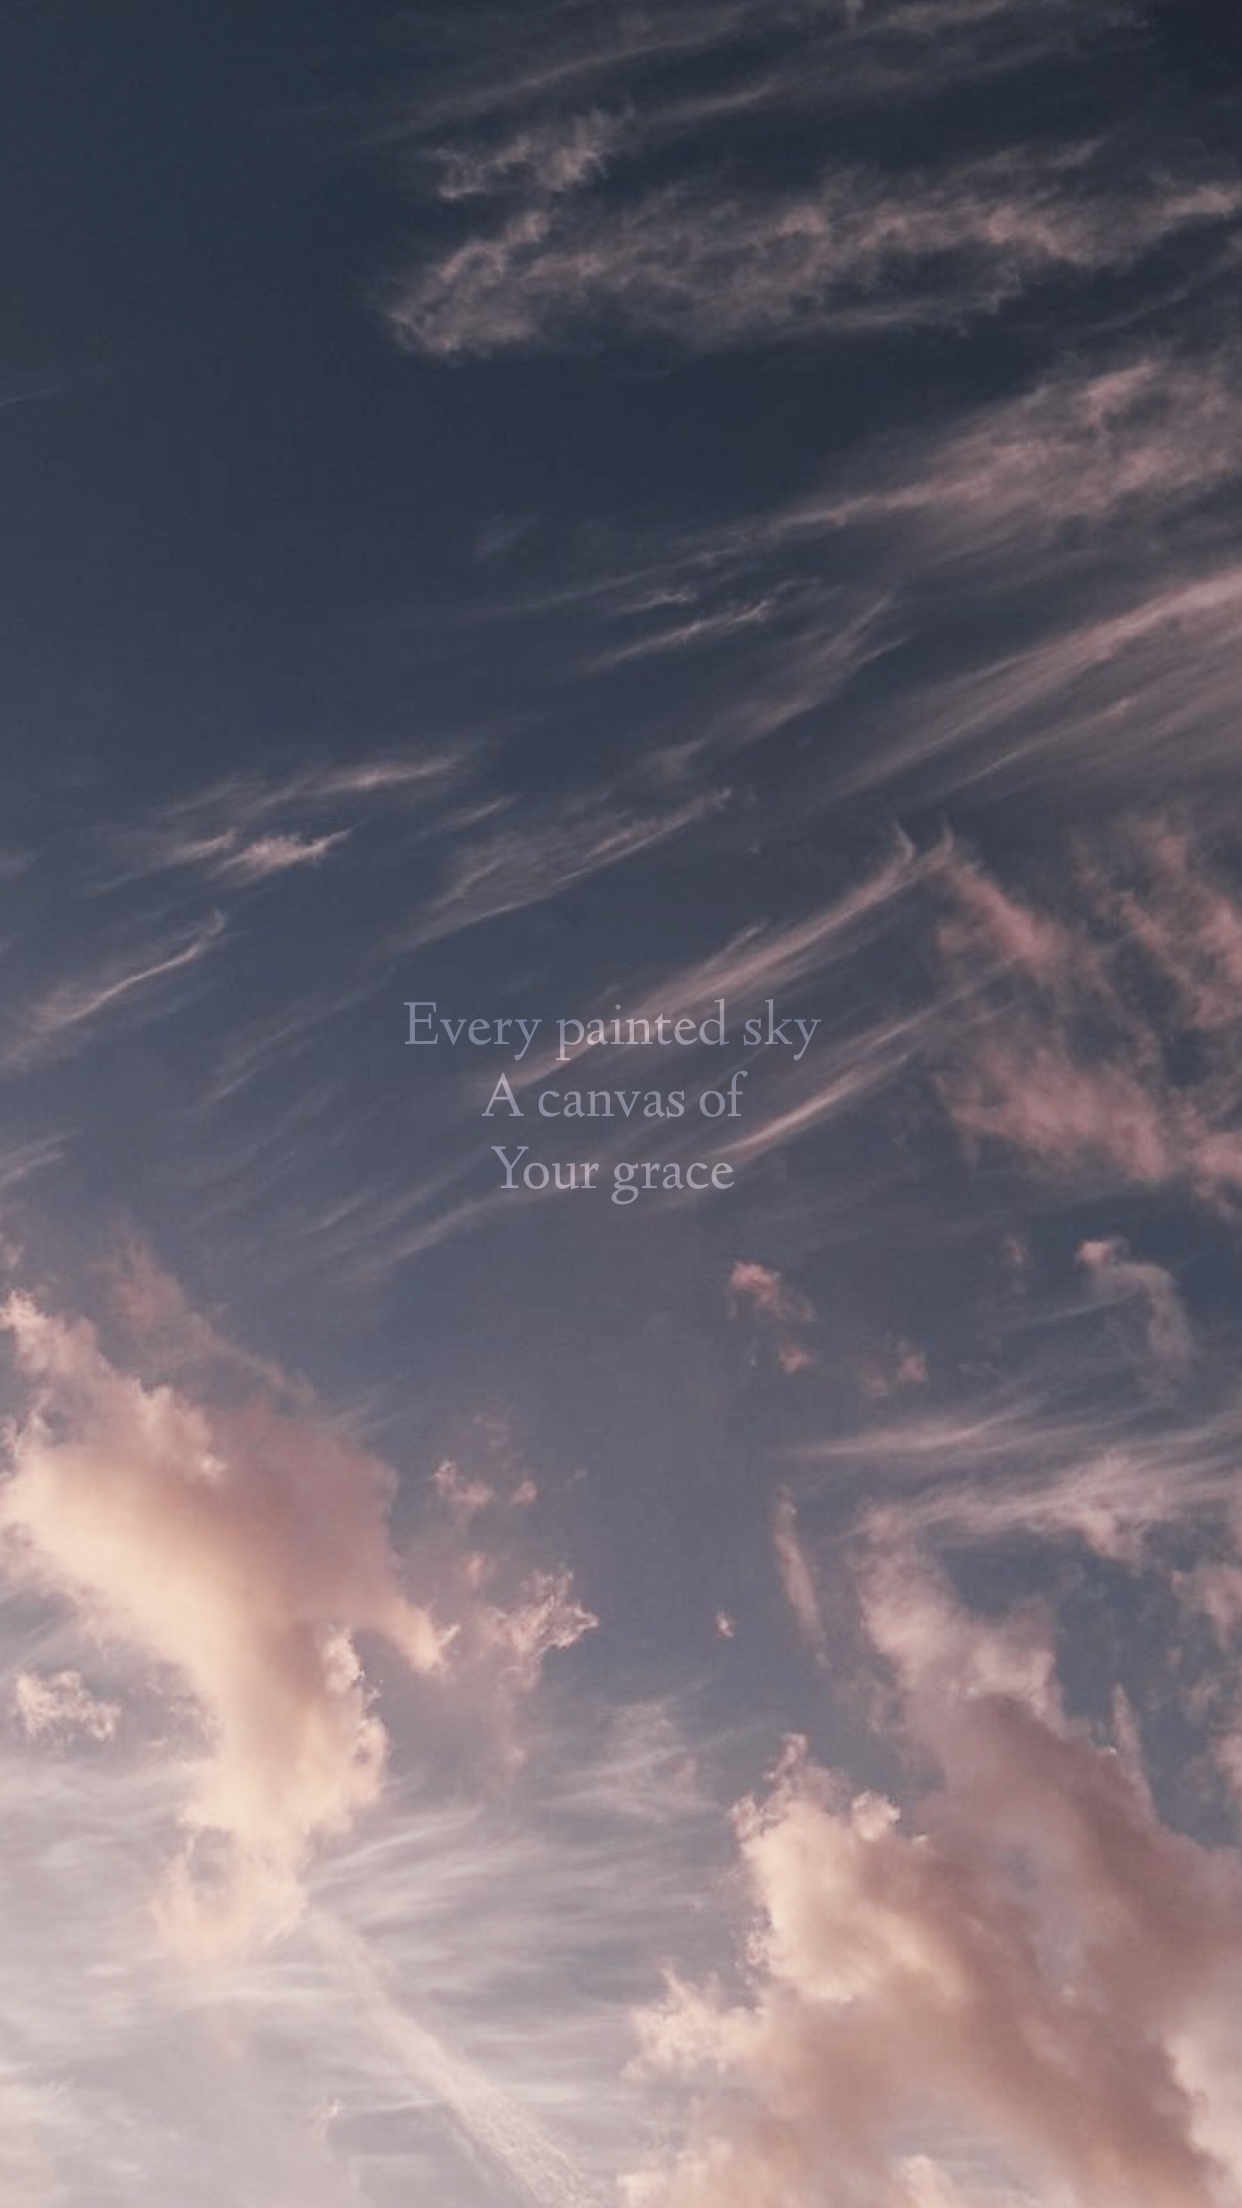 Every Painted Sky A Canvas Of Your Grace Jess And Gabriel Christian Iphone Wallpaper Iphone Wallpaper Quotes Bible Jesus Wallpaper Christian Iphone Wallpaper